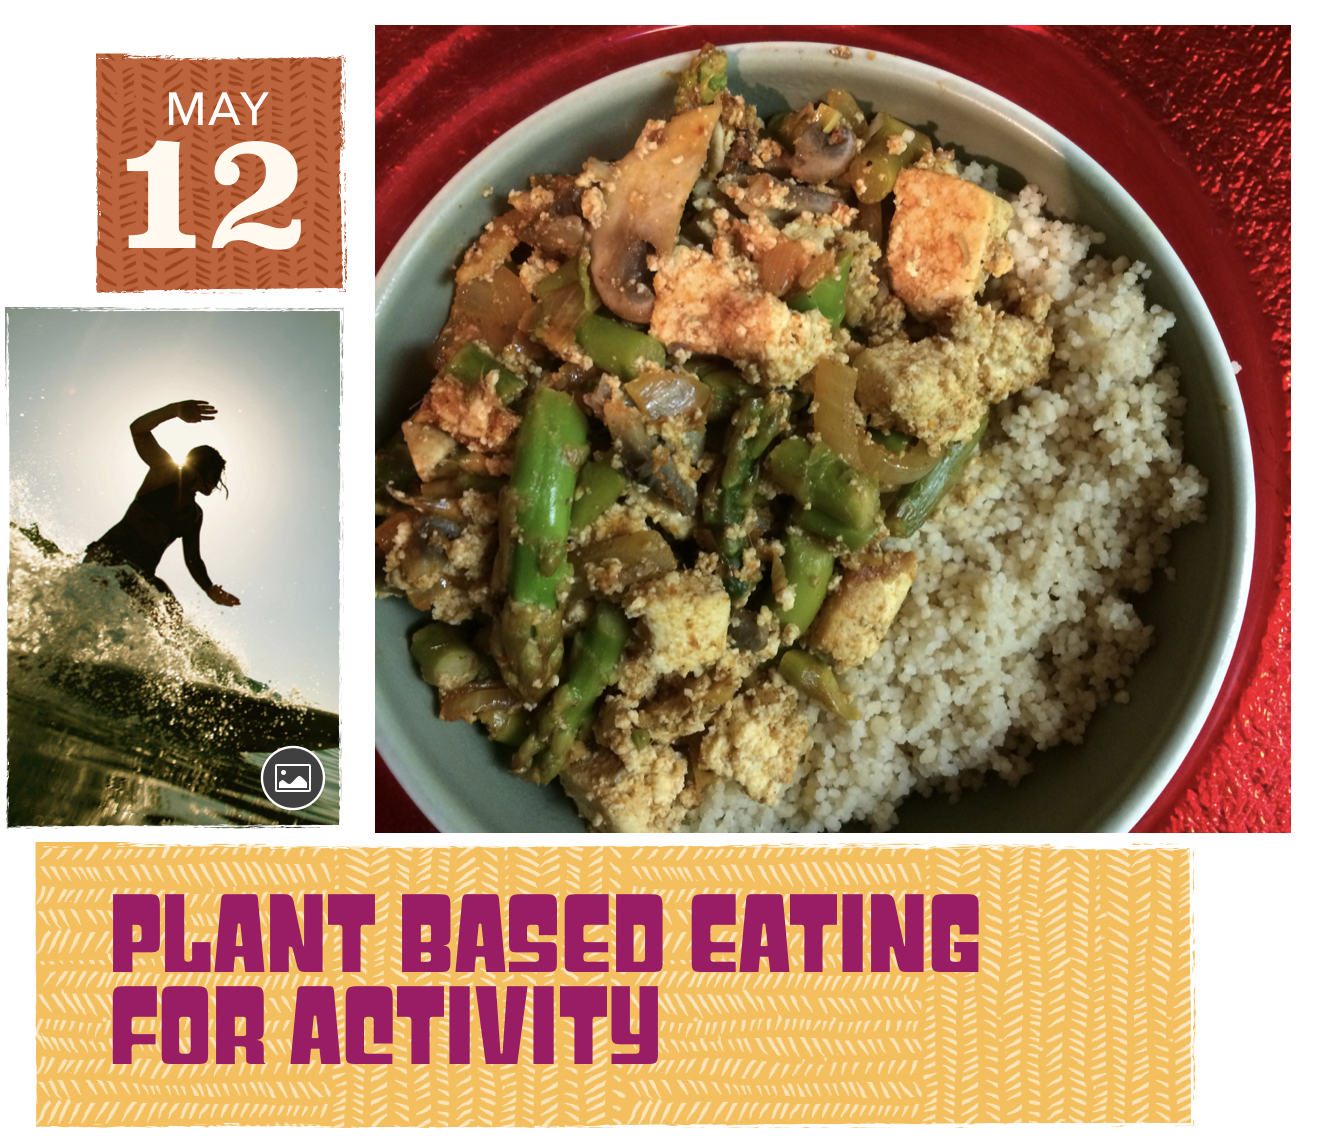 A lecture and guide on how to optimize plant based eating for active people.   -Learn the benefits of a balanced, plant based diet  -Learn how to include foods that can boost performance and recovery  -Learn the small steps to take that make the greatest impact  -Recipe ideas and more   Date and Time: May 12th From 11am-12pm    Where: 119-412 Willowgrove square    Cost: Free but donations accepted :)